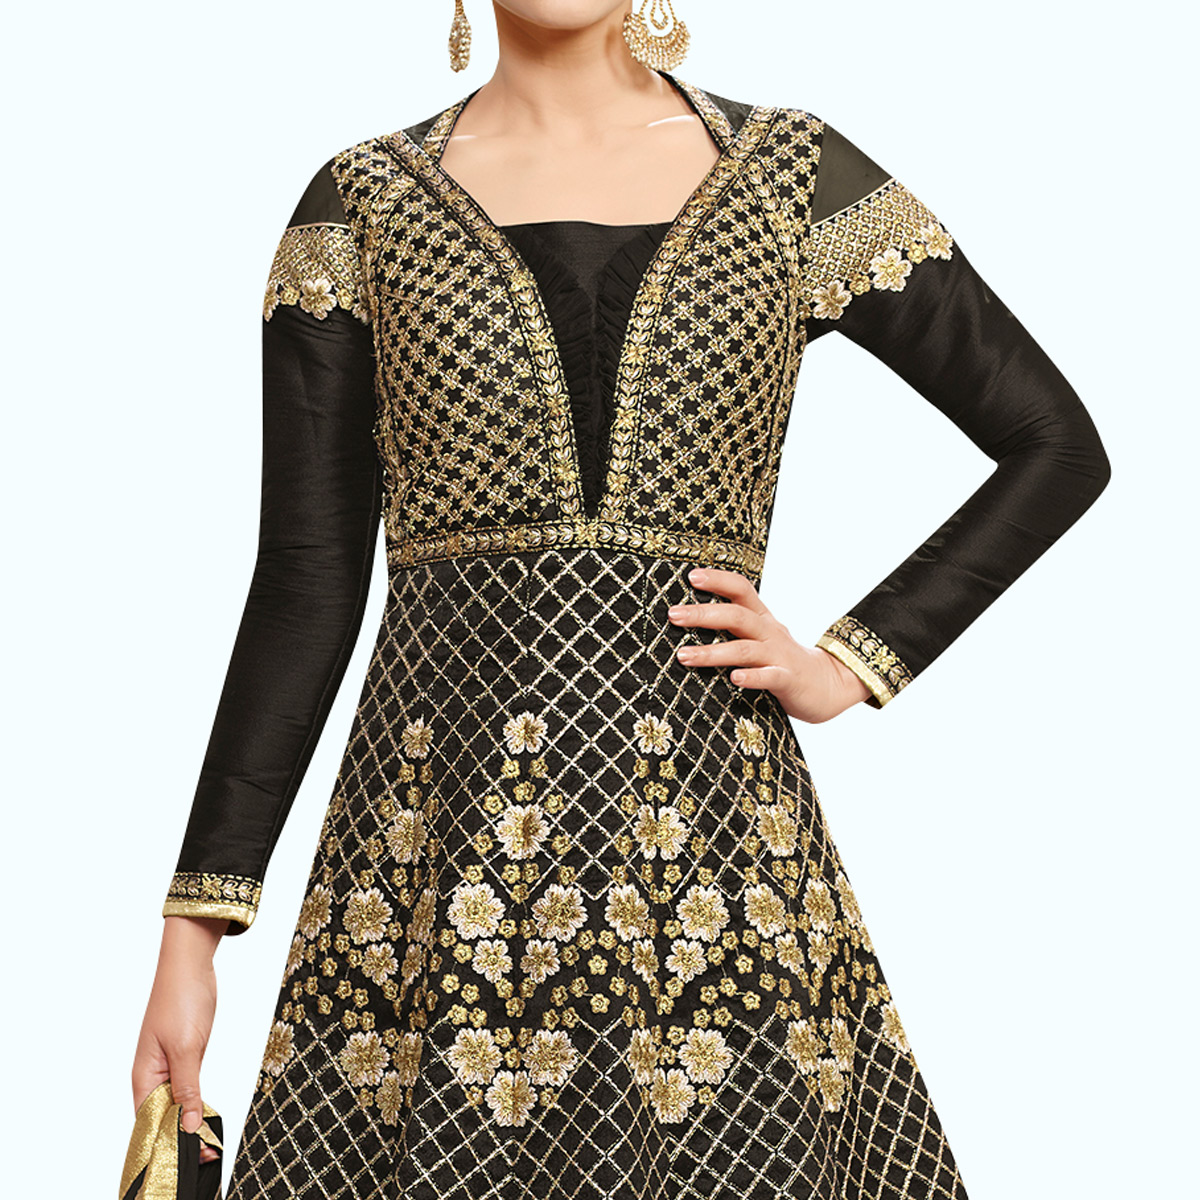 Sensational Black Colored Party Wear Embroidered Raw Silk-Net Anarkali Suit